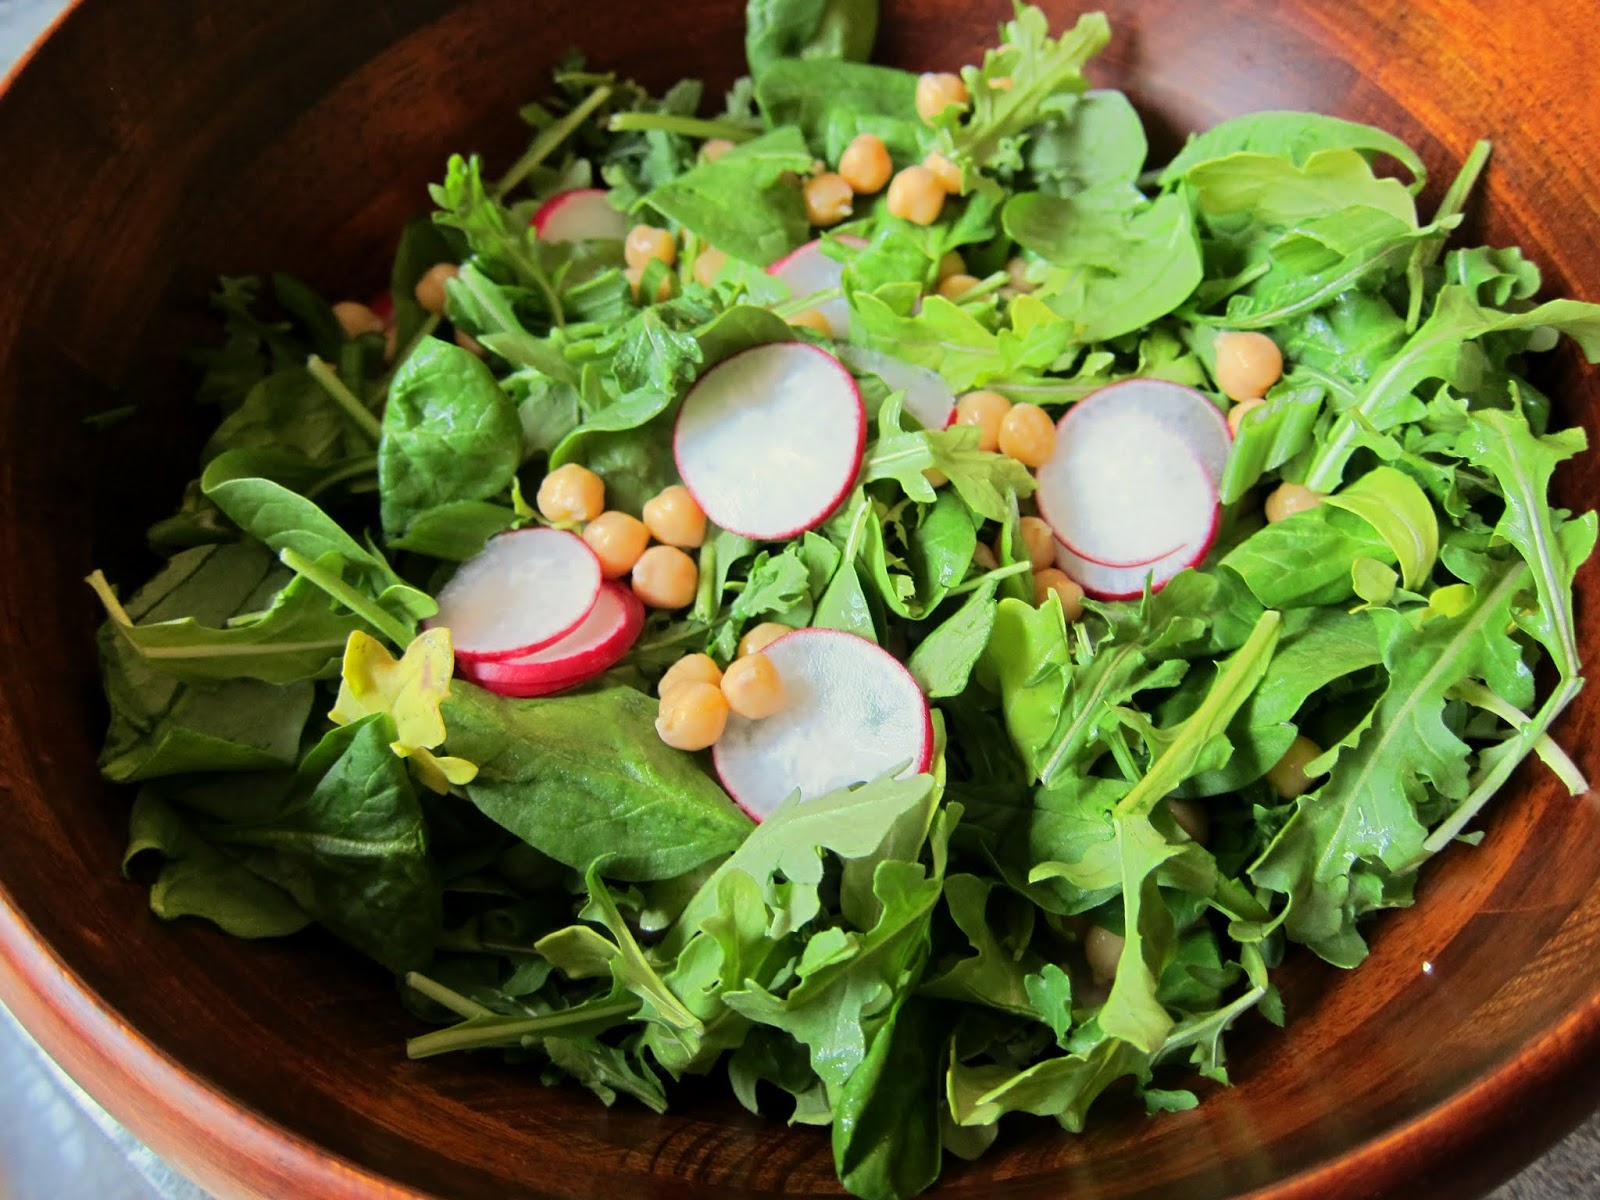 Chickpeas with Spring Green Salad and a Lemon Vinaigrette